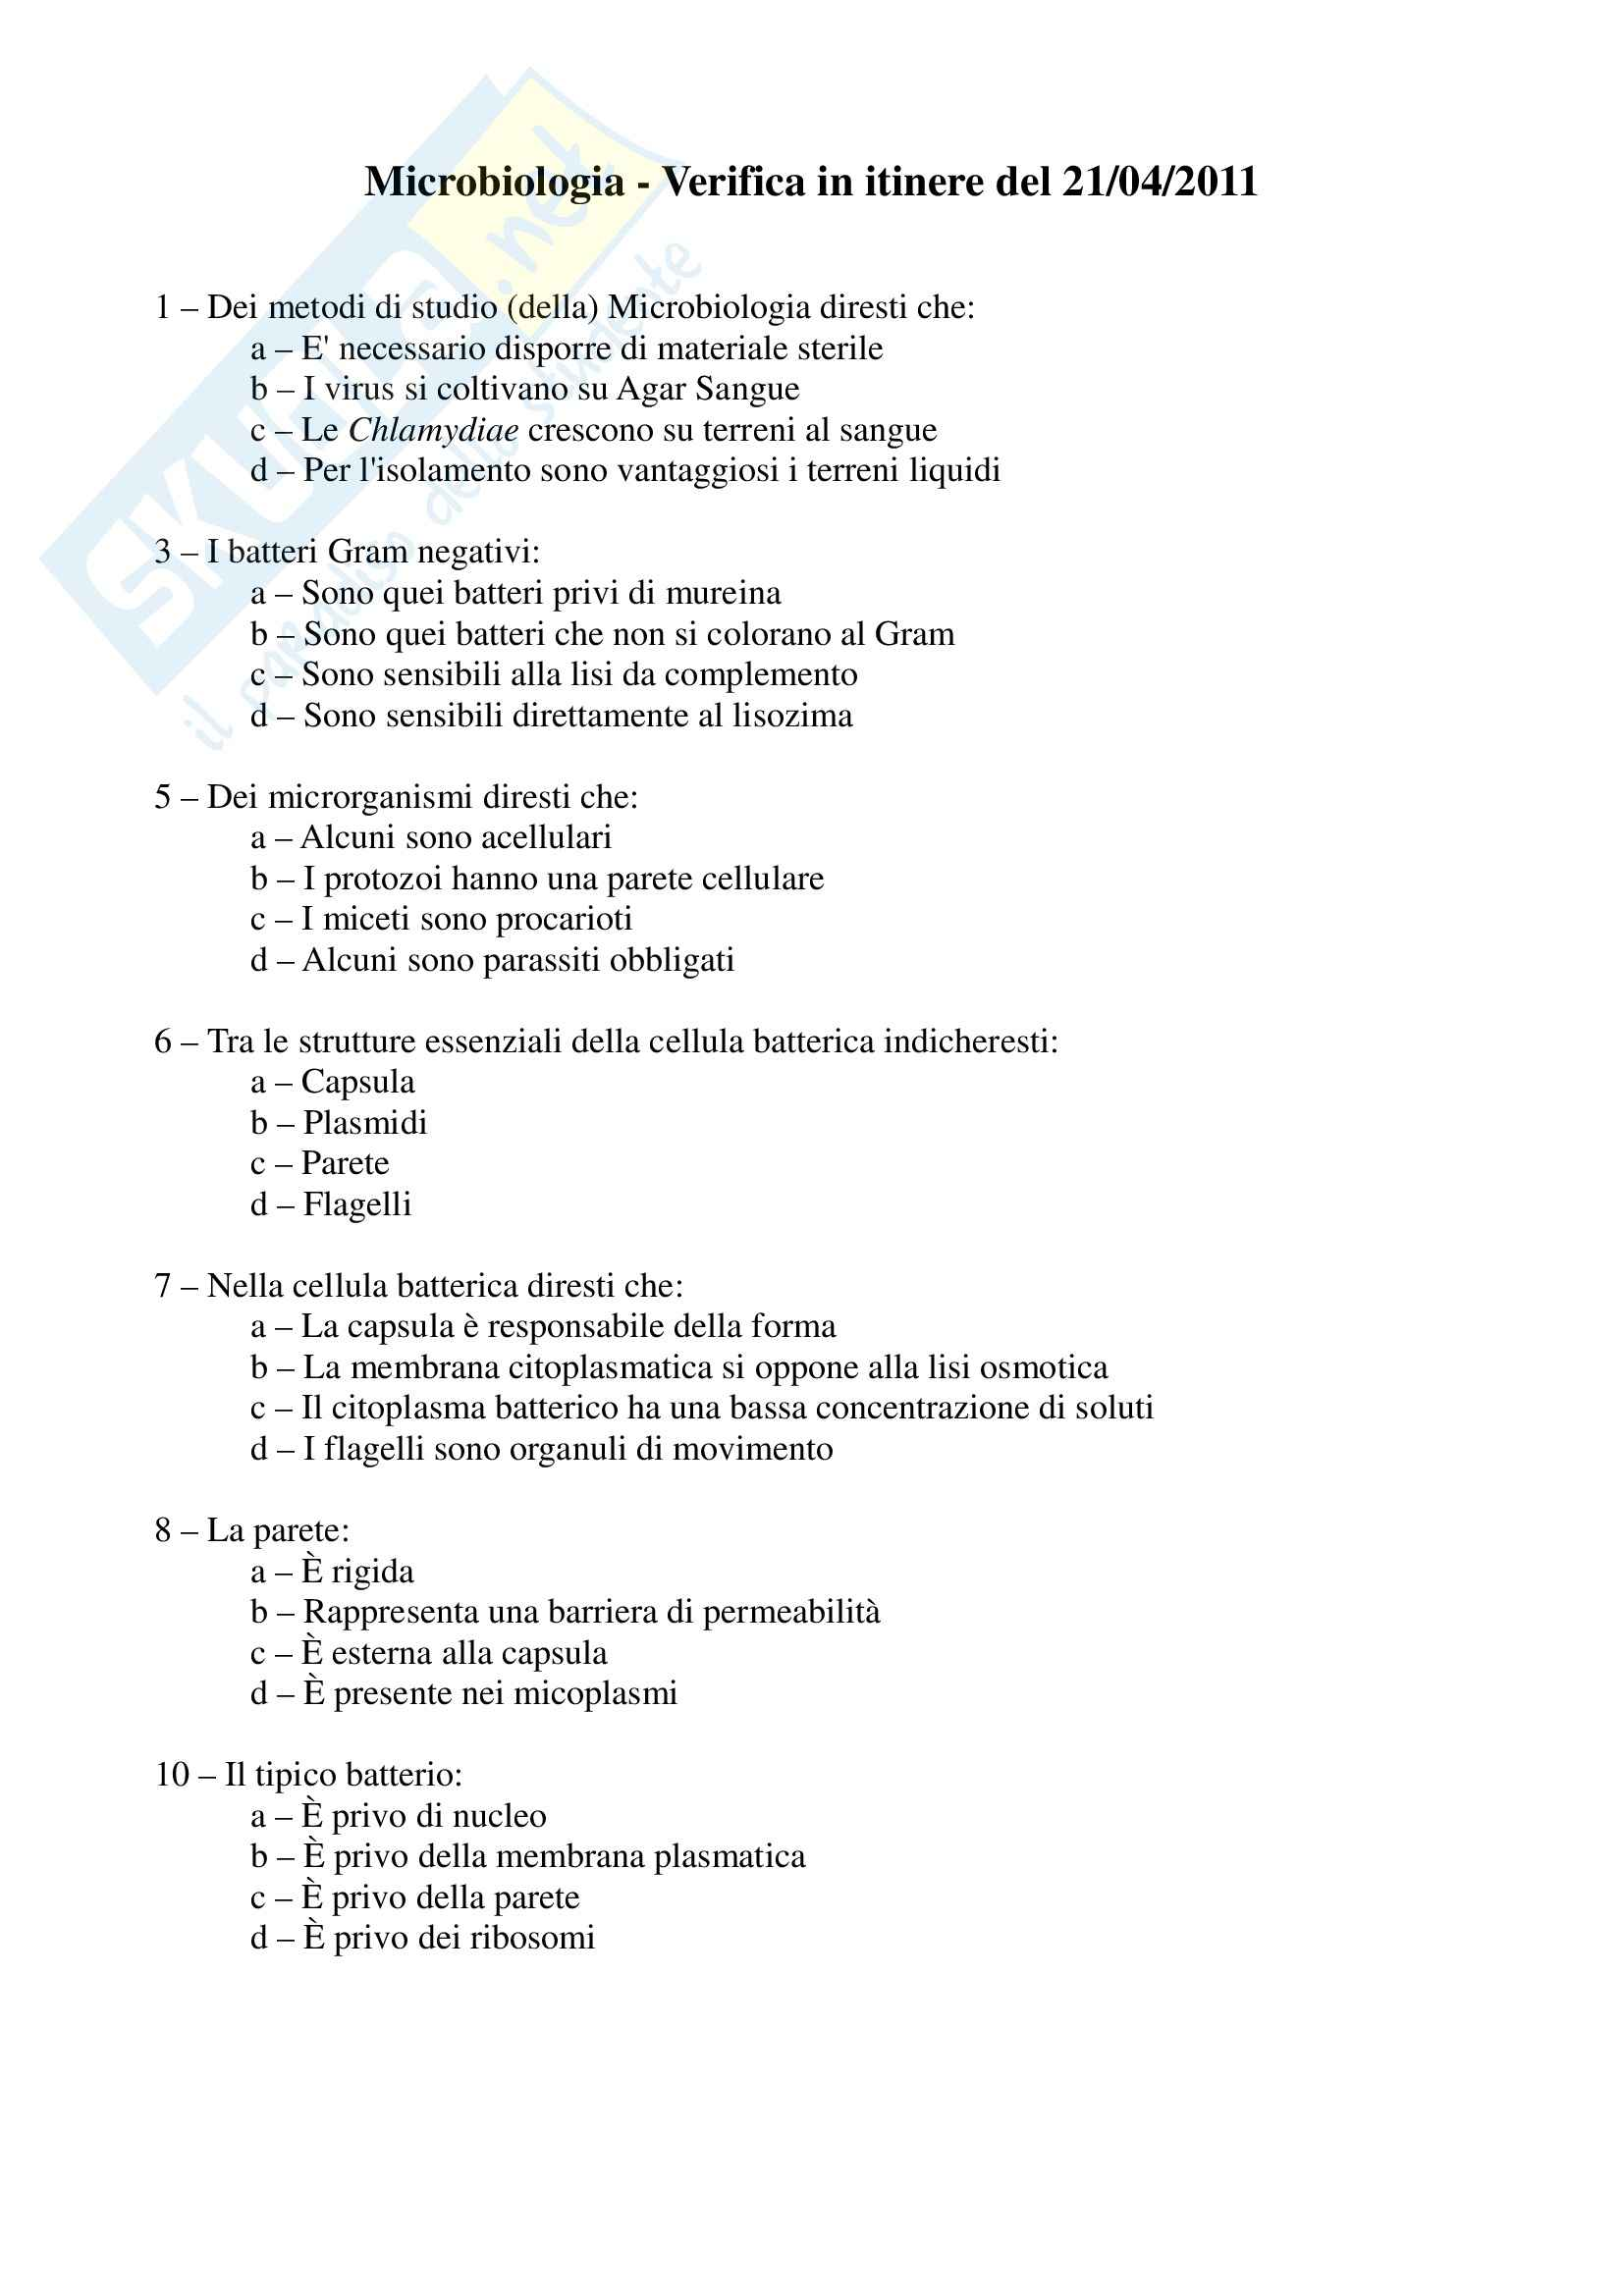 Microbiologia - Verifica in itinere Pag. 1